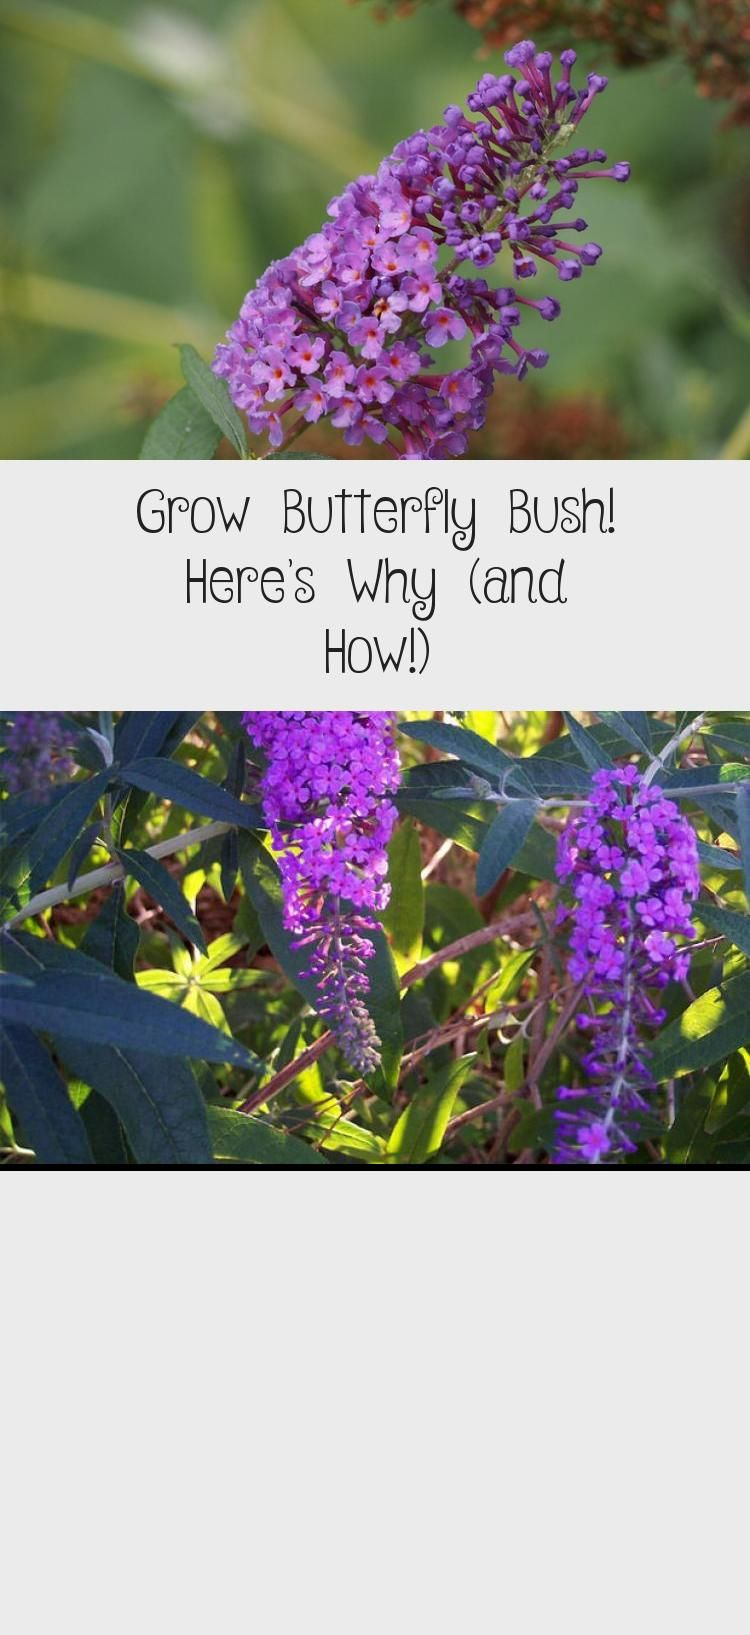 Grow Butterfly Bush! Here's Why (and How!) Learn why you